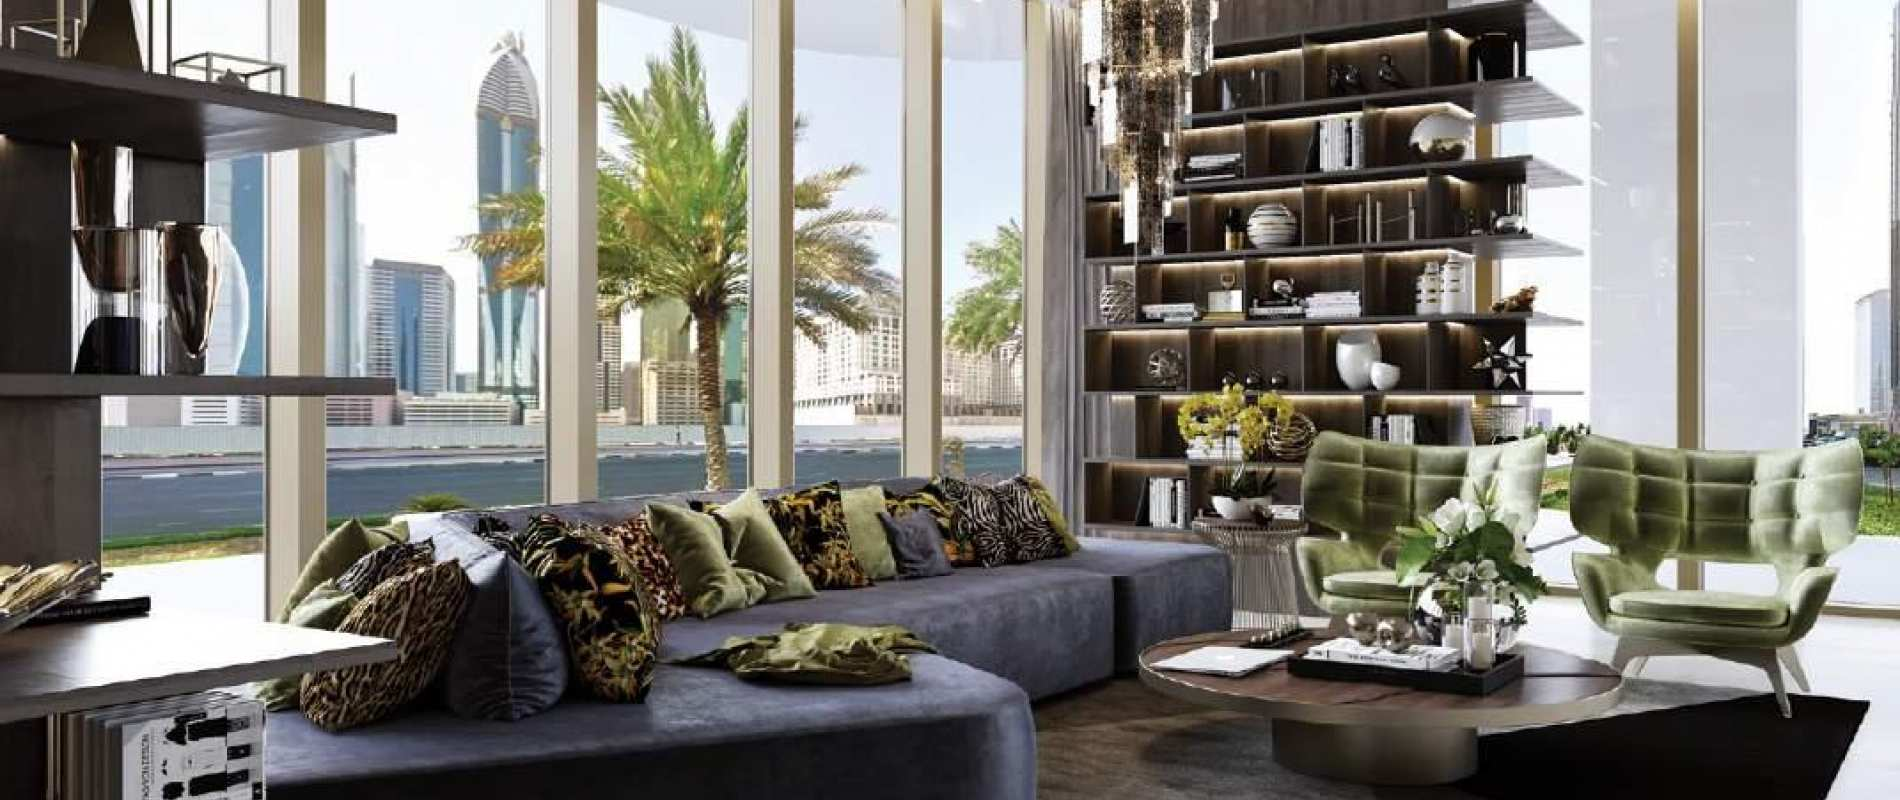 Luxury Property Dubai 2 Bedroom Apartment for sale in I Love Florence Business Bay